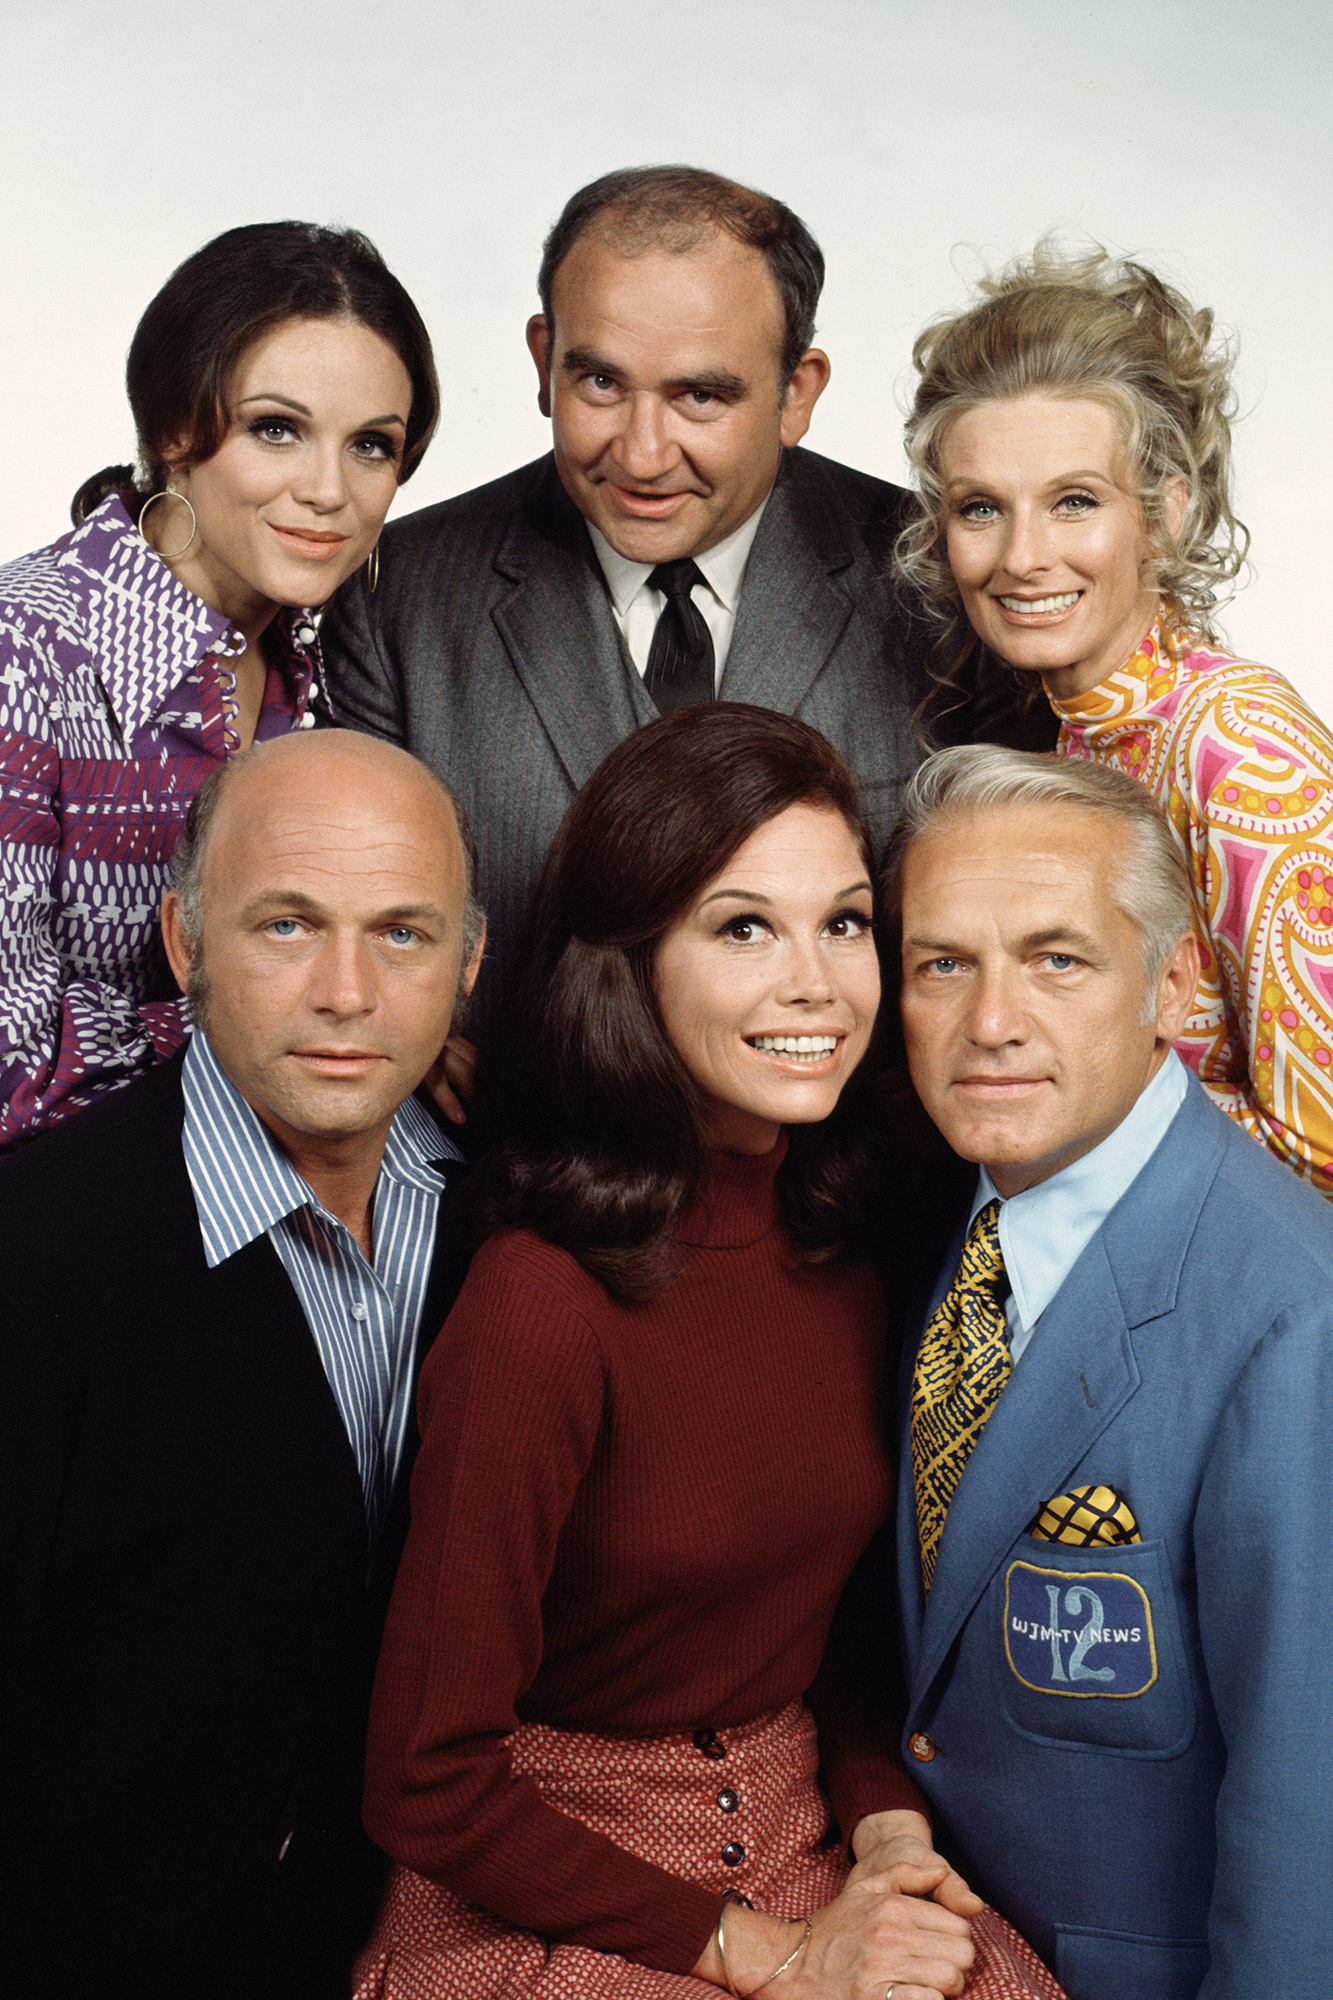 Clockwise from top left: Valerie Harper, Ed Asner, Cloris Leachman, Ted Knight, Mary Tyler Moore and Gavin MacLeod in a promo image from The Mary Tyler Moore Show in 1972.